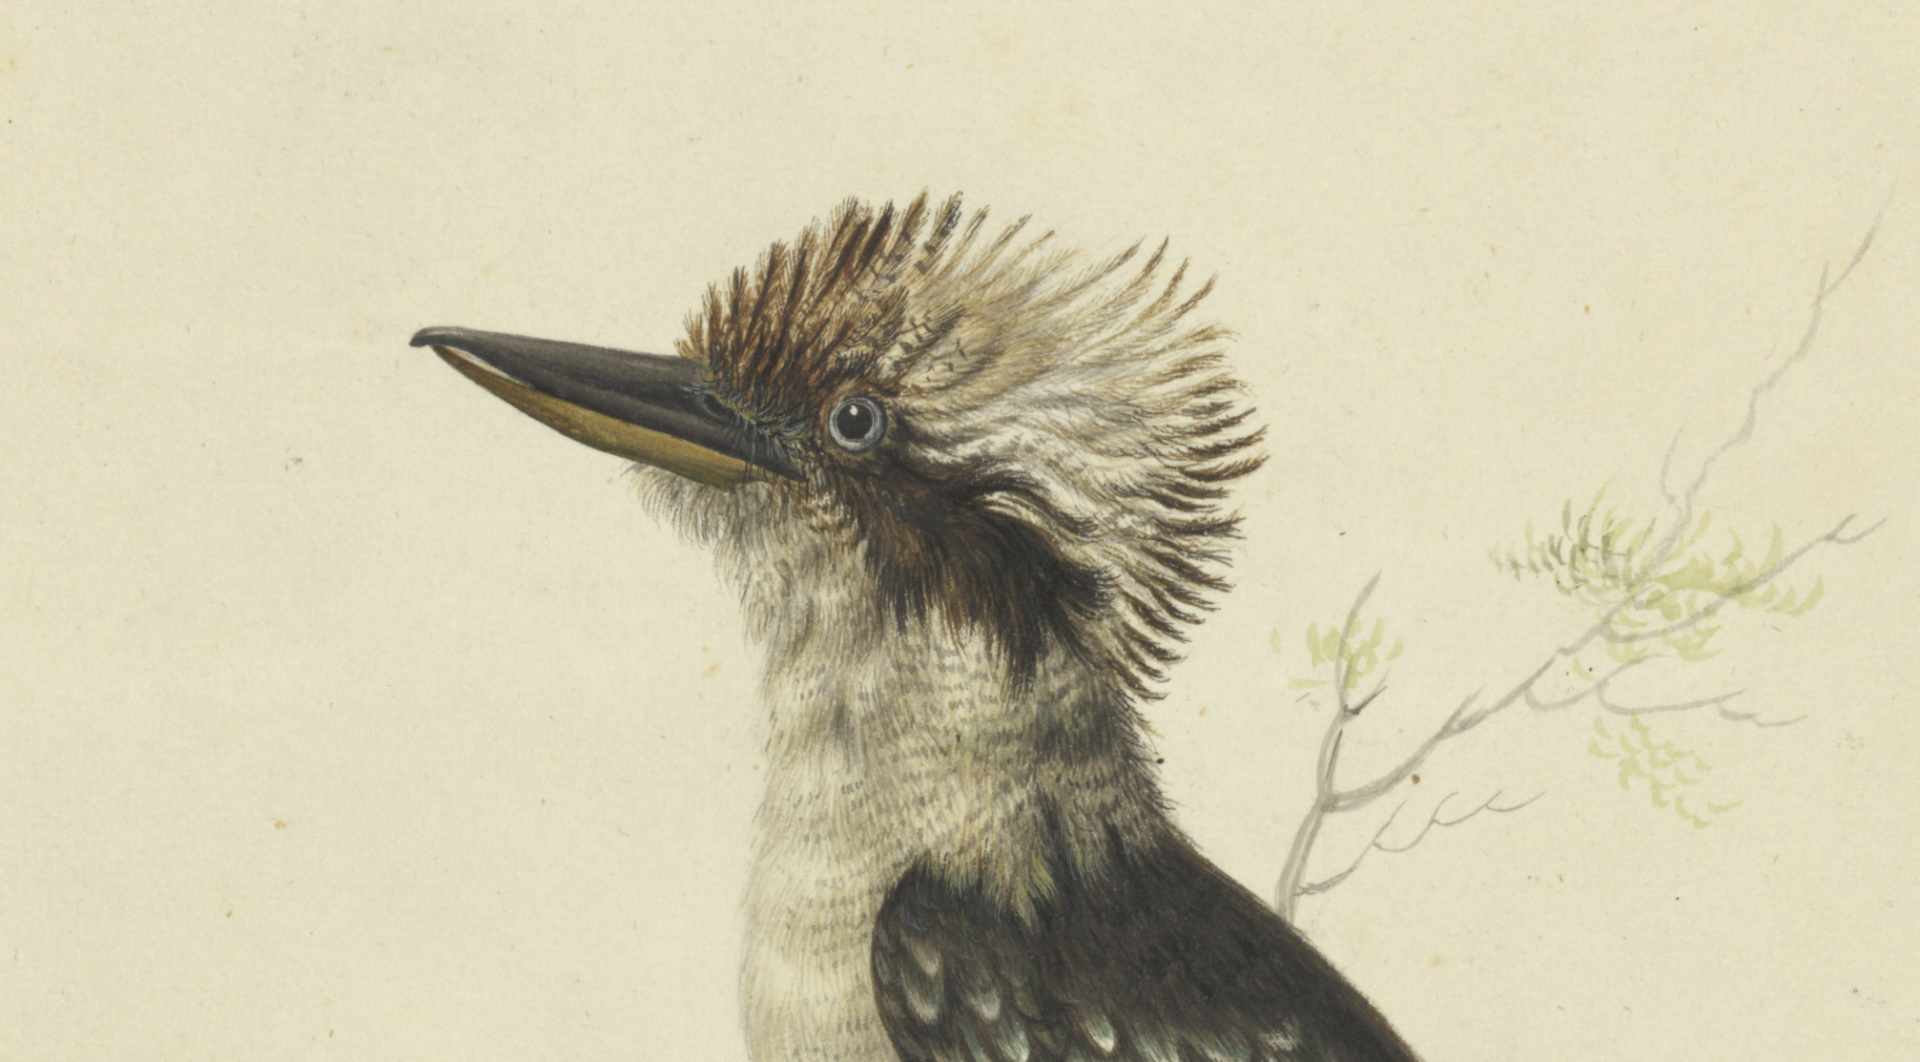 The Great brown kingfisher from 1790, identified as a Kookaburra, by Sarah Stone